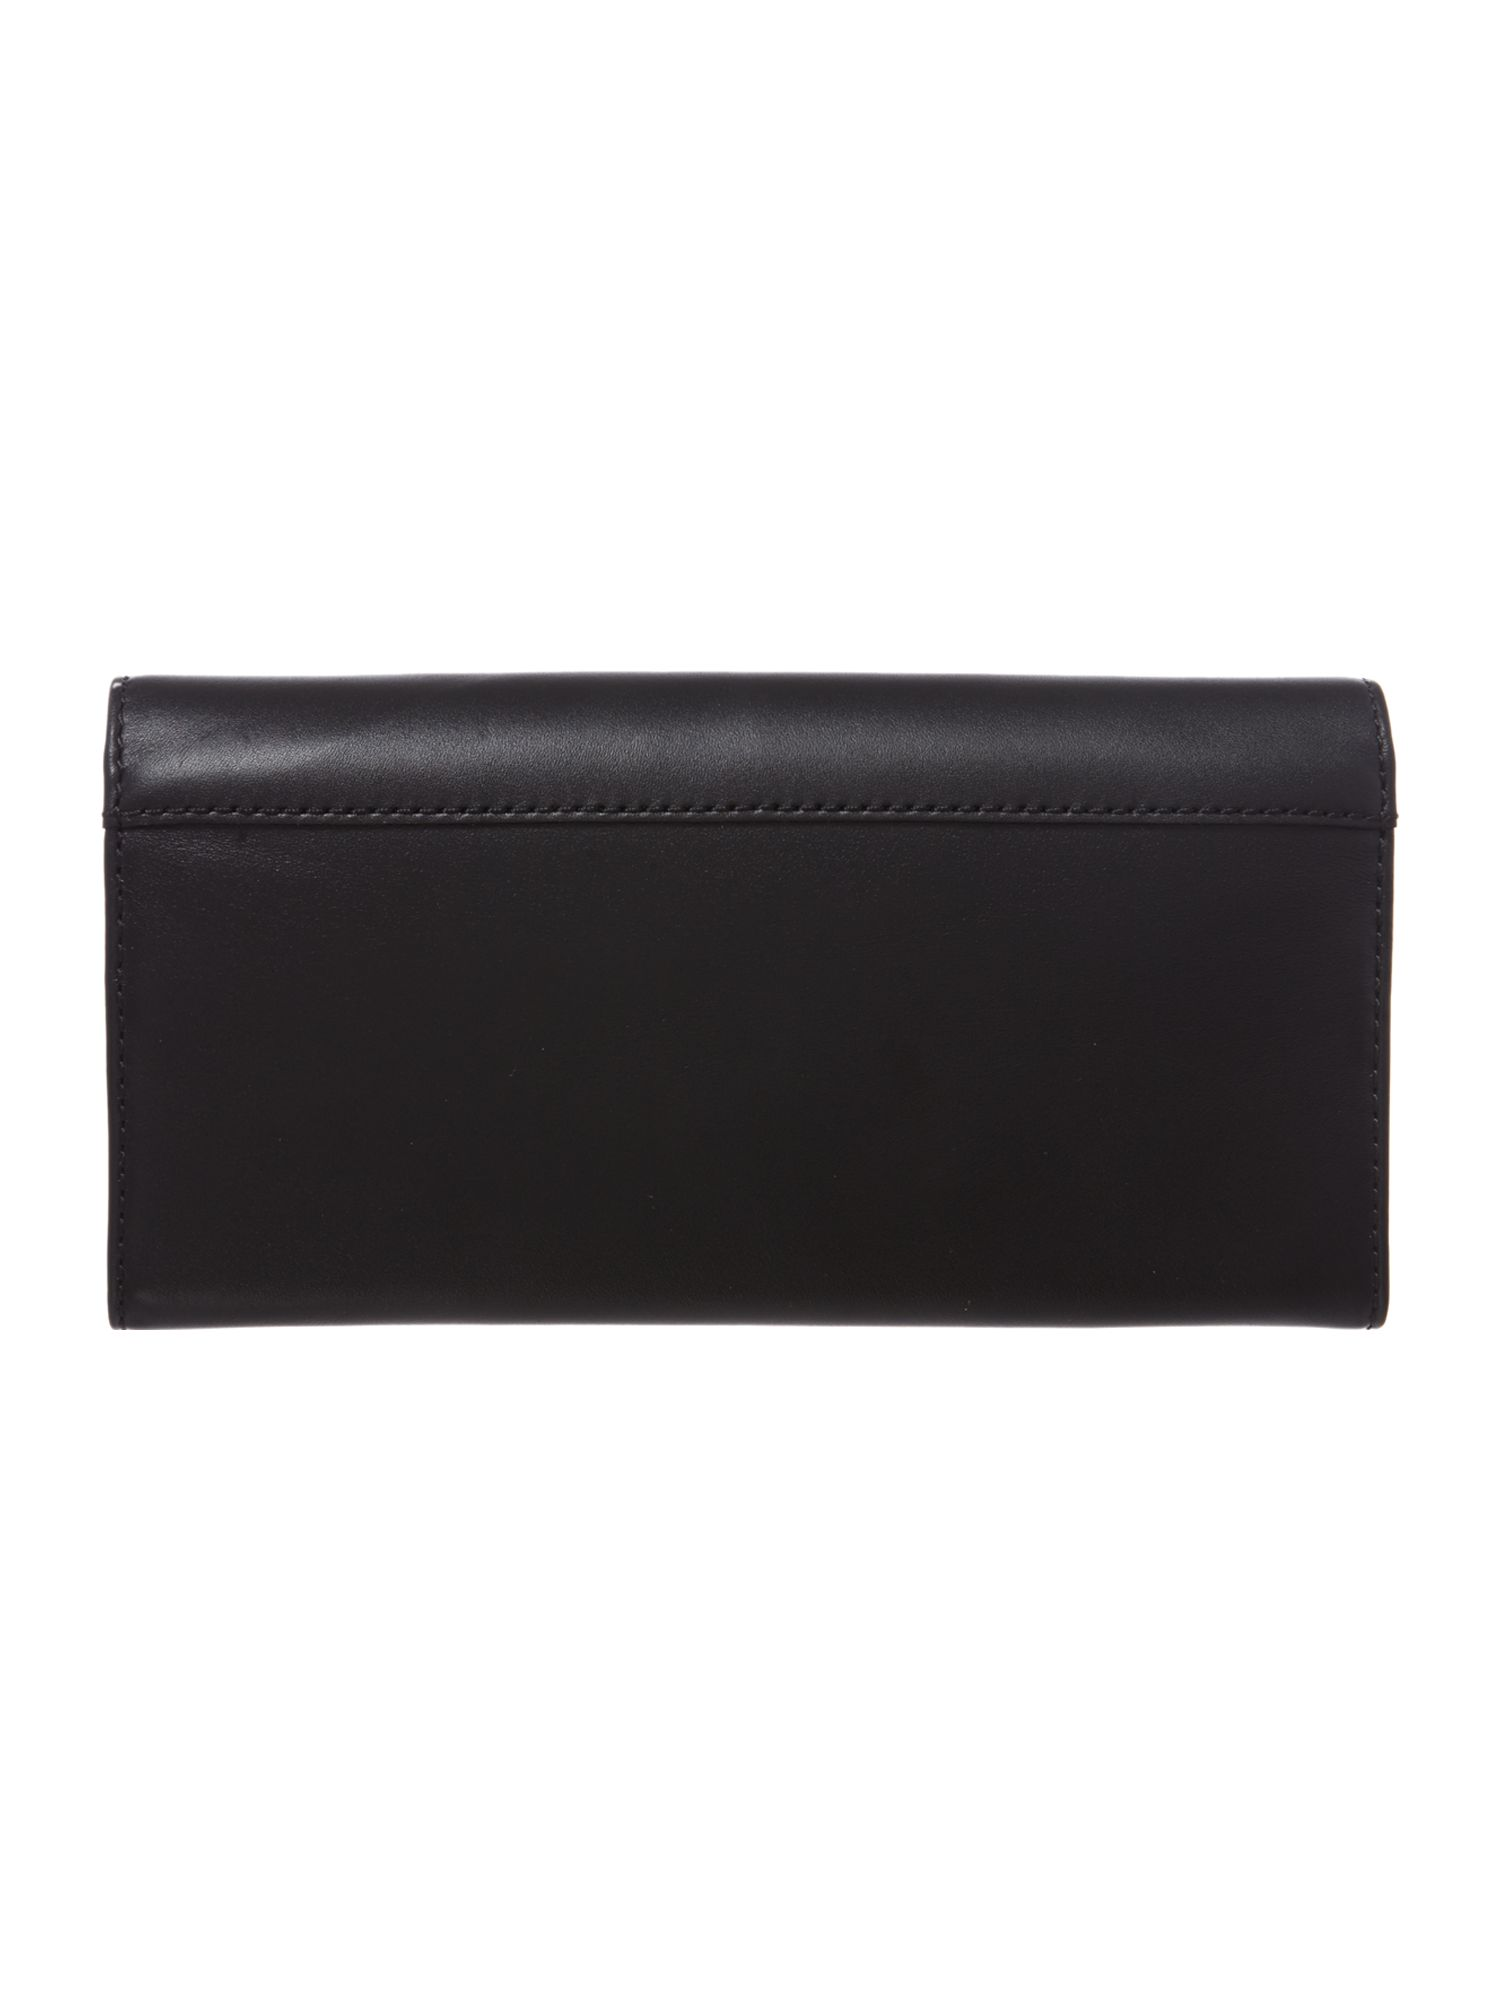 Large black bow leather flapover purse